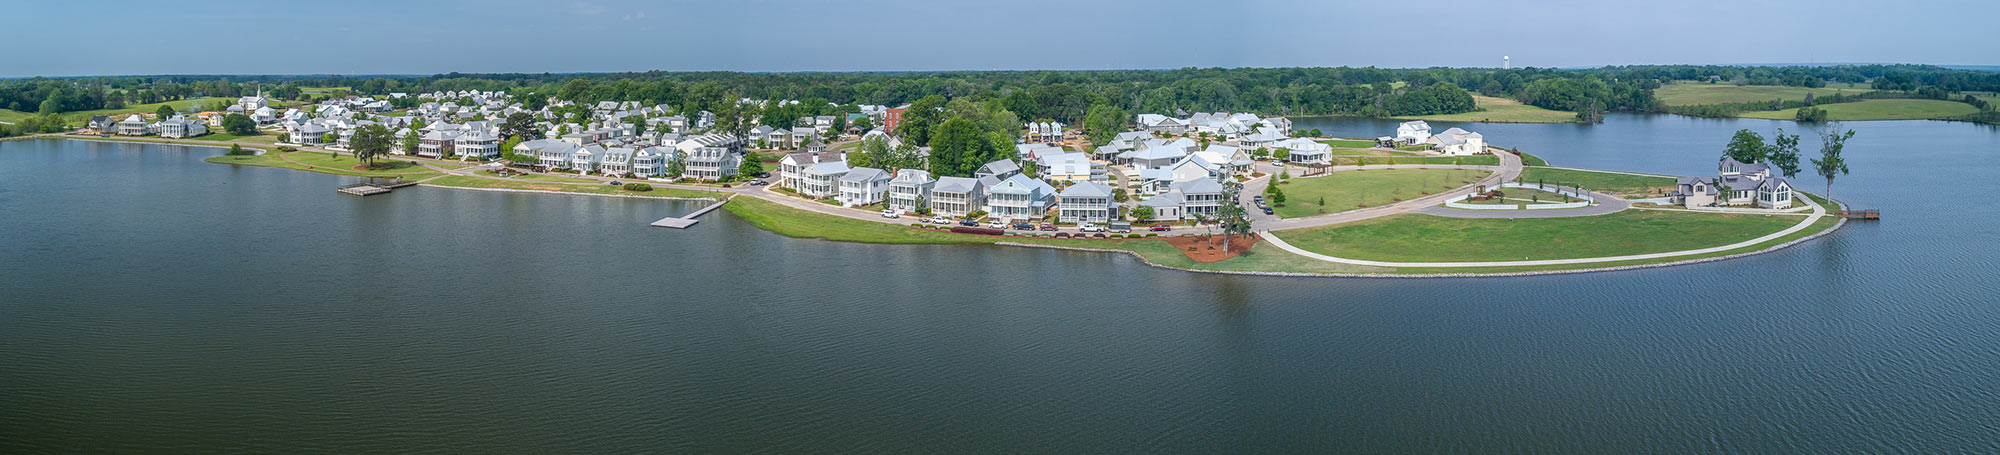 The Waters New Home Community located in Pike Road, AL